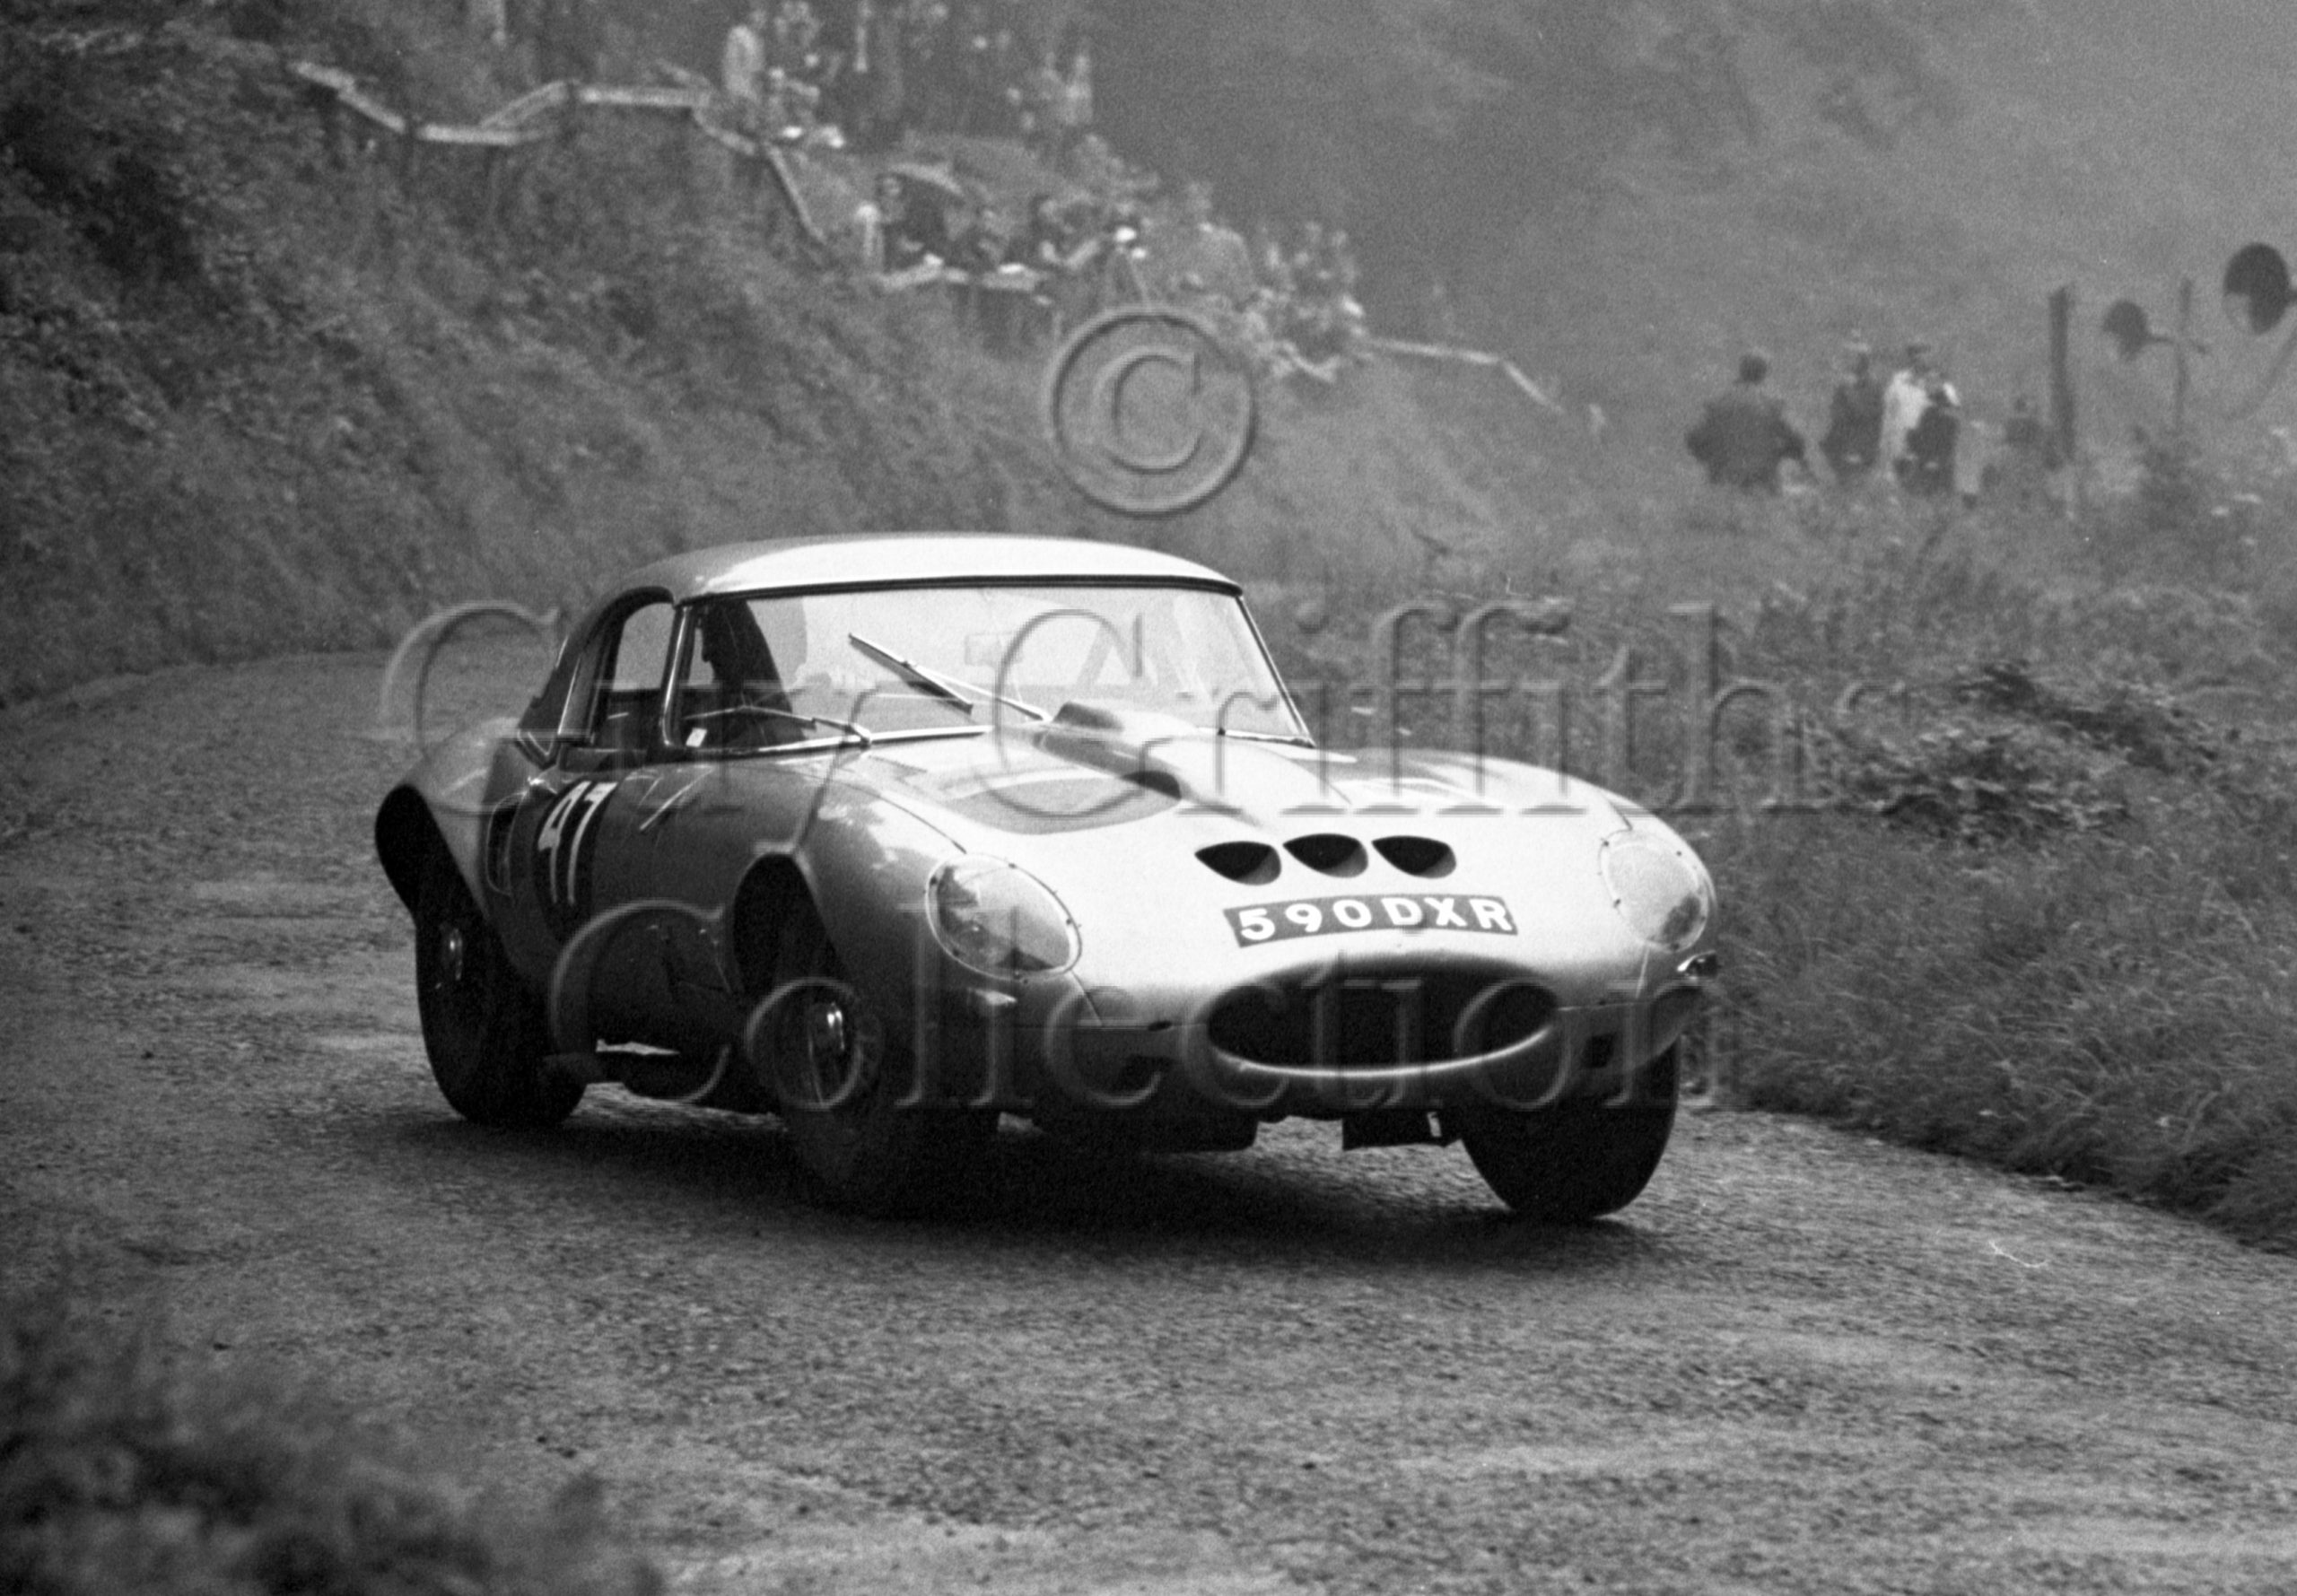 102-172–R-B-Beck–Jaguar-Egal–590-DXR–Shelsley-Walsh–21-08-1966.jpg - Guy Griffiths Collection